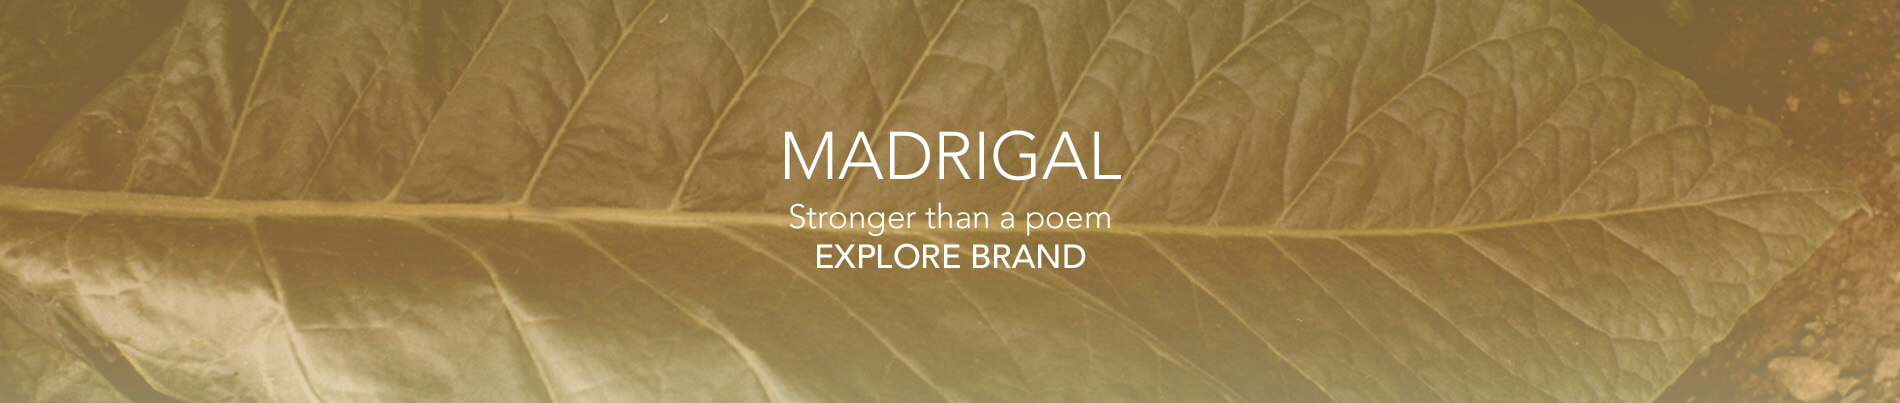 banner-madrigal